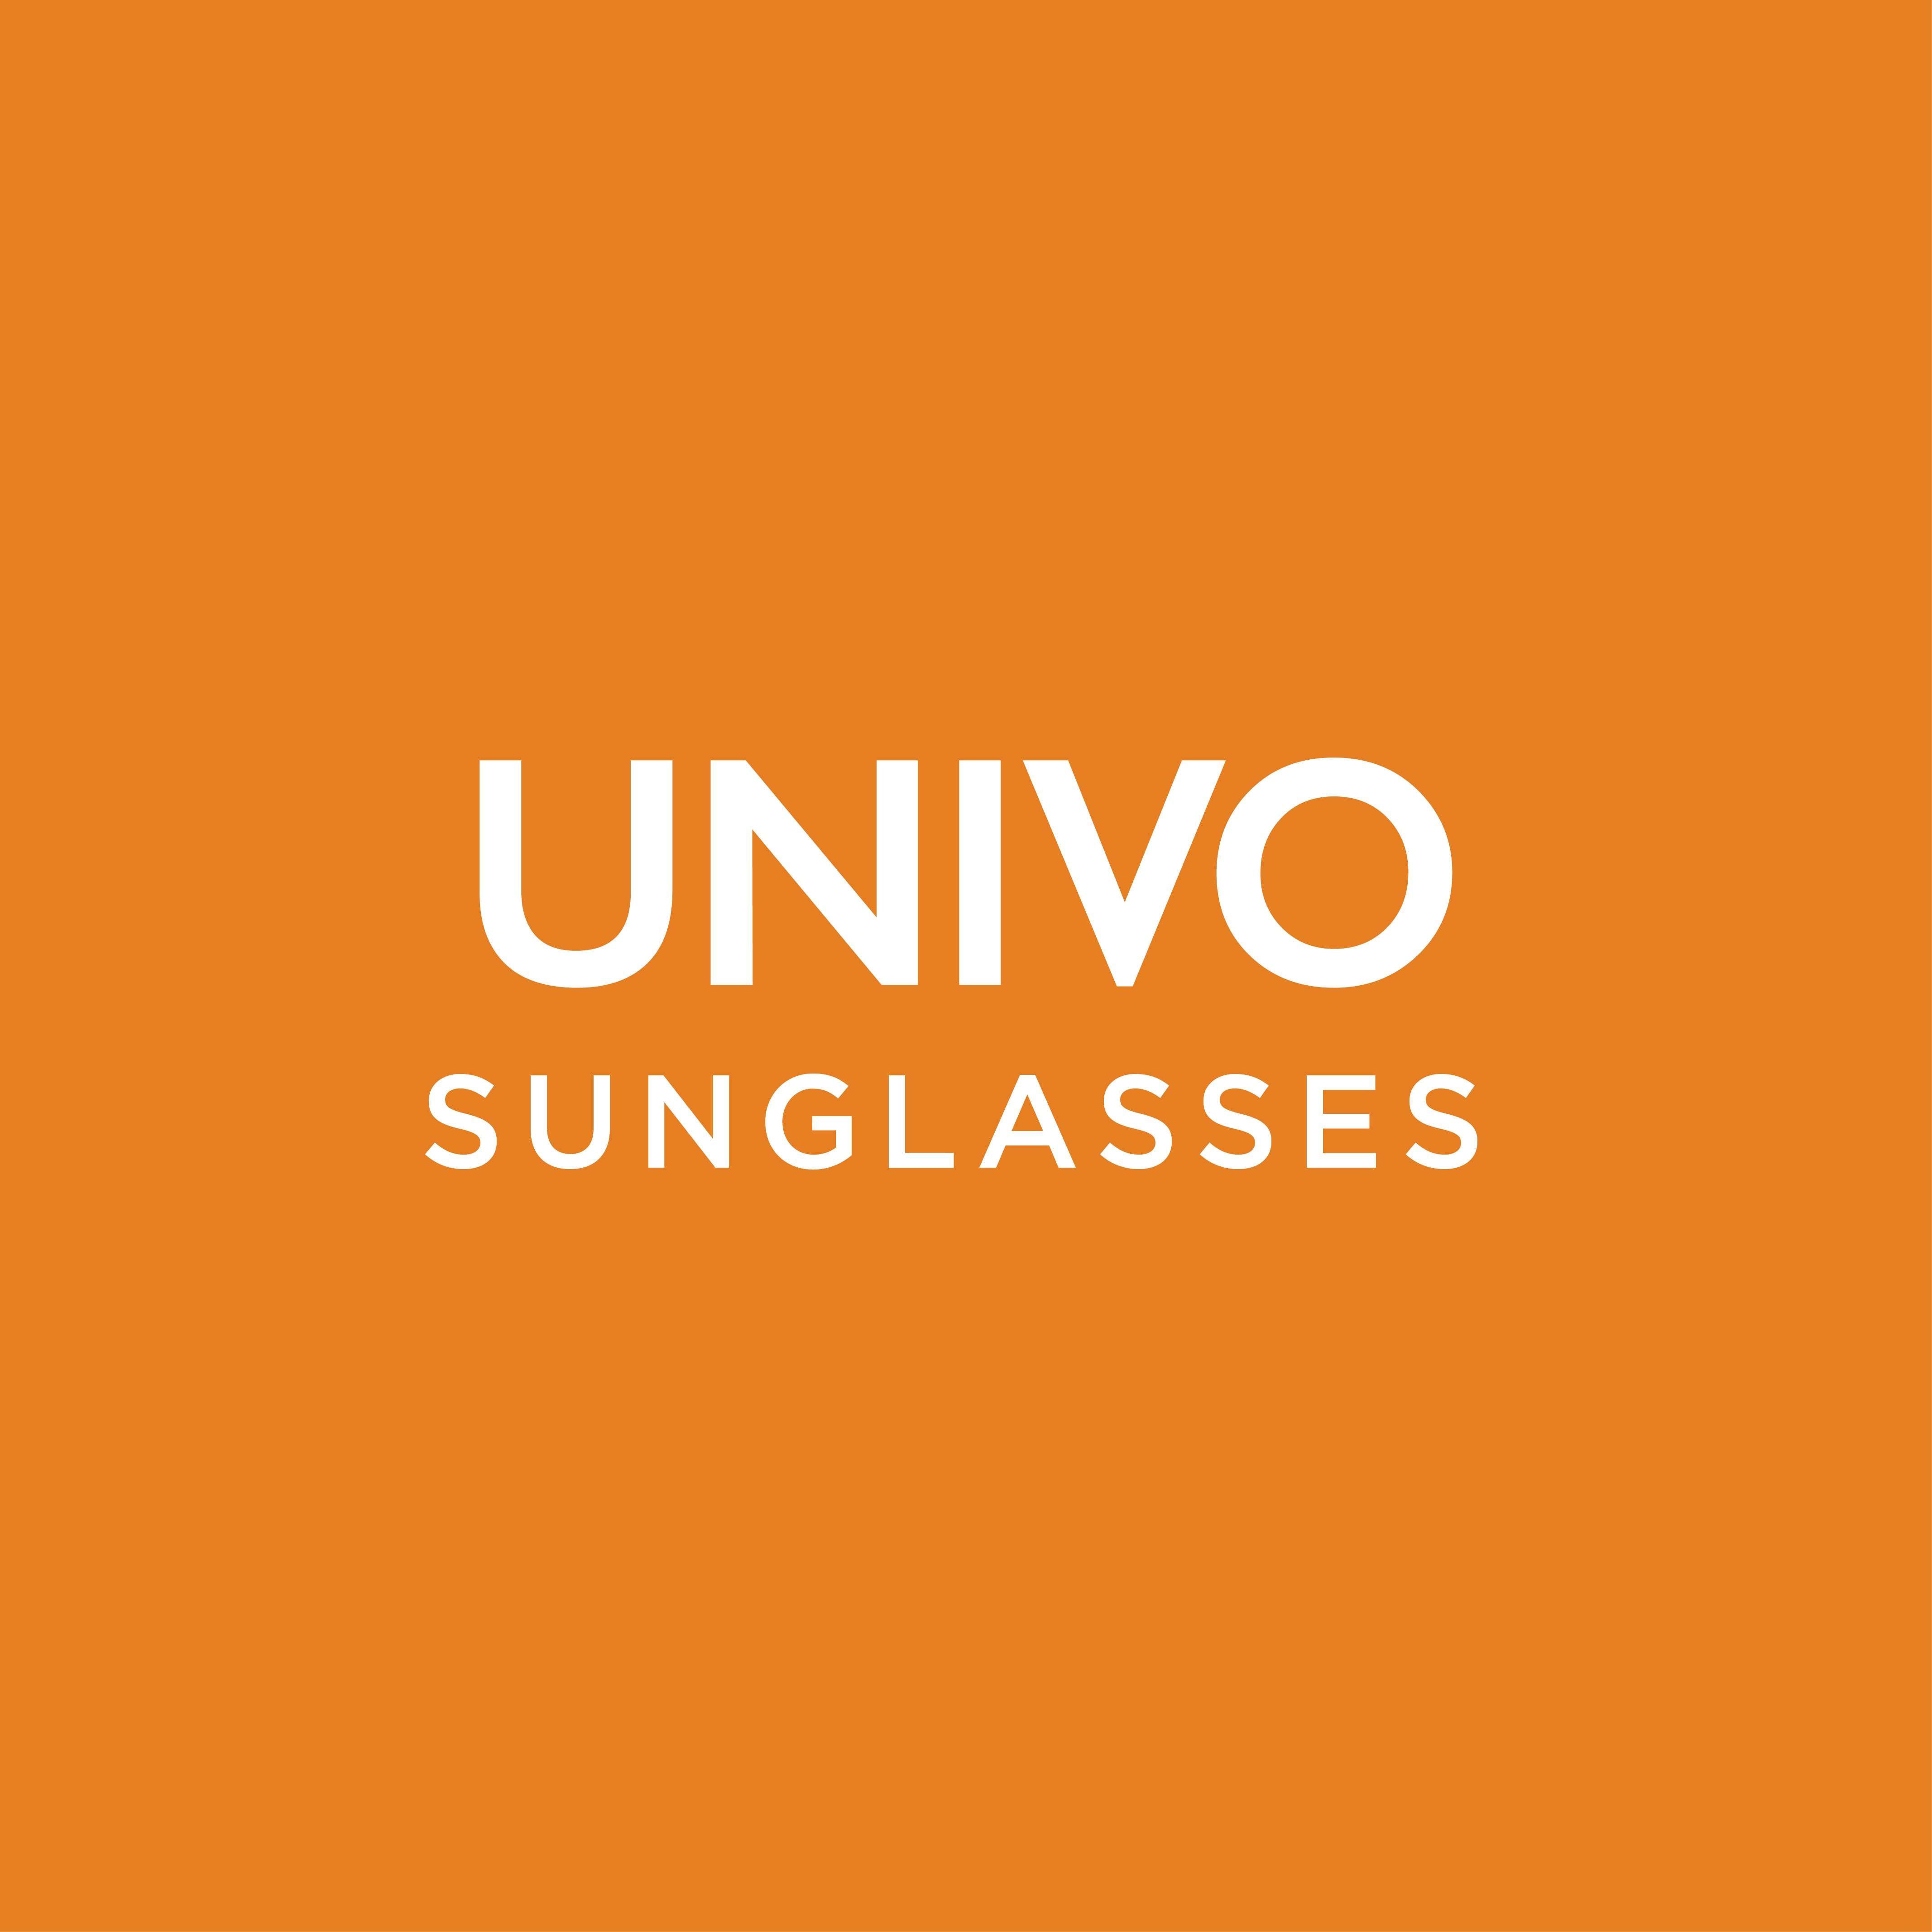 Univo Sunglasses